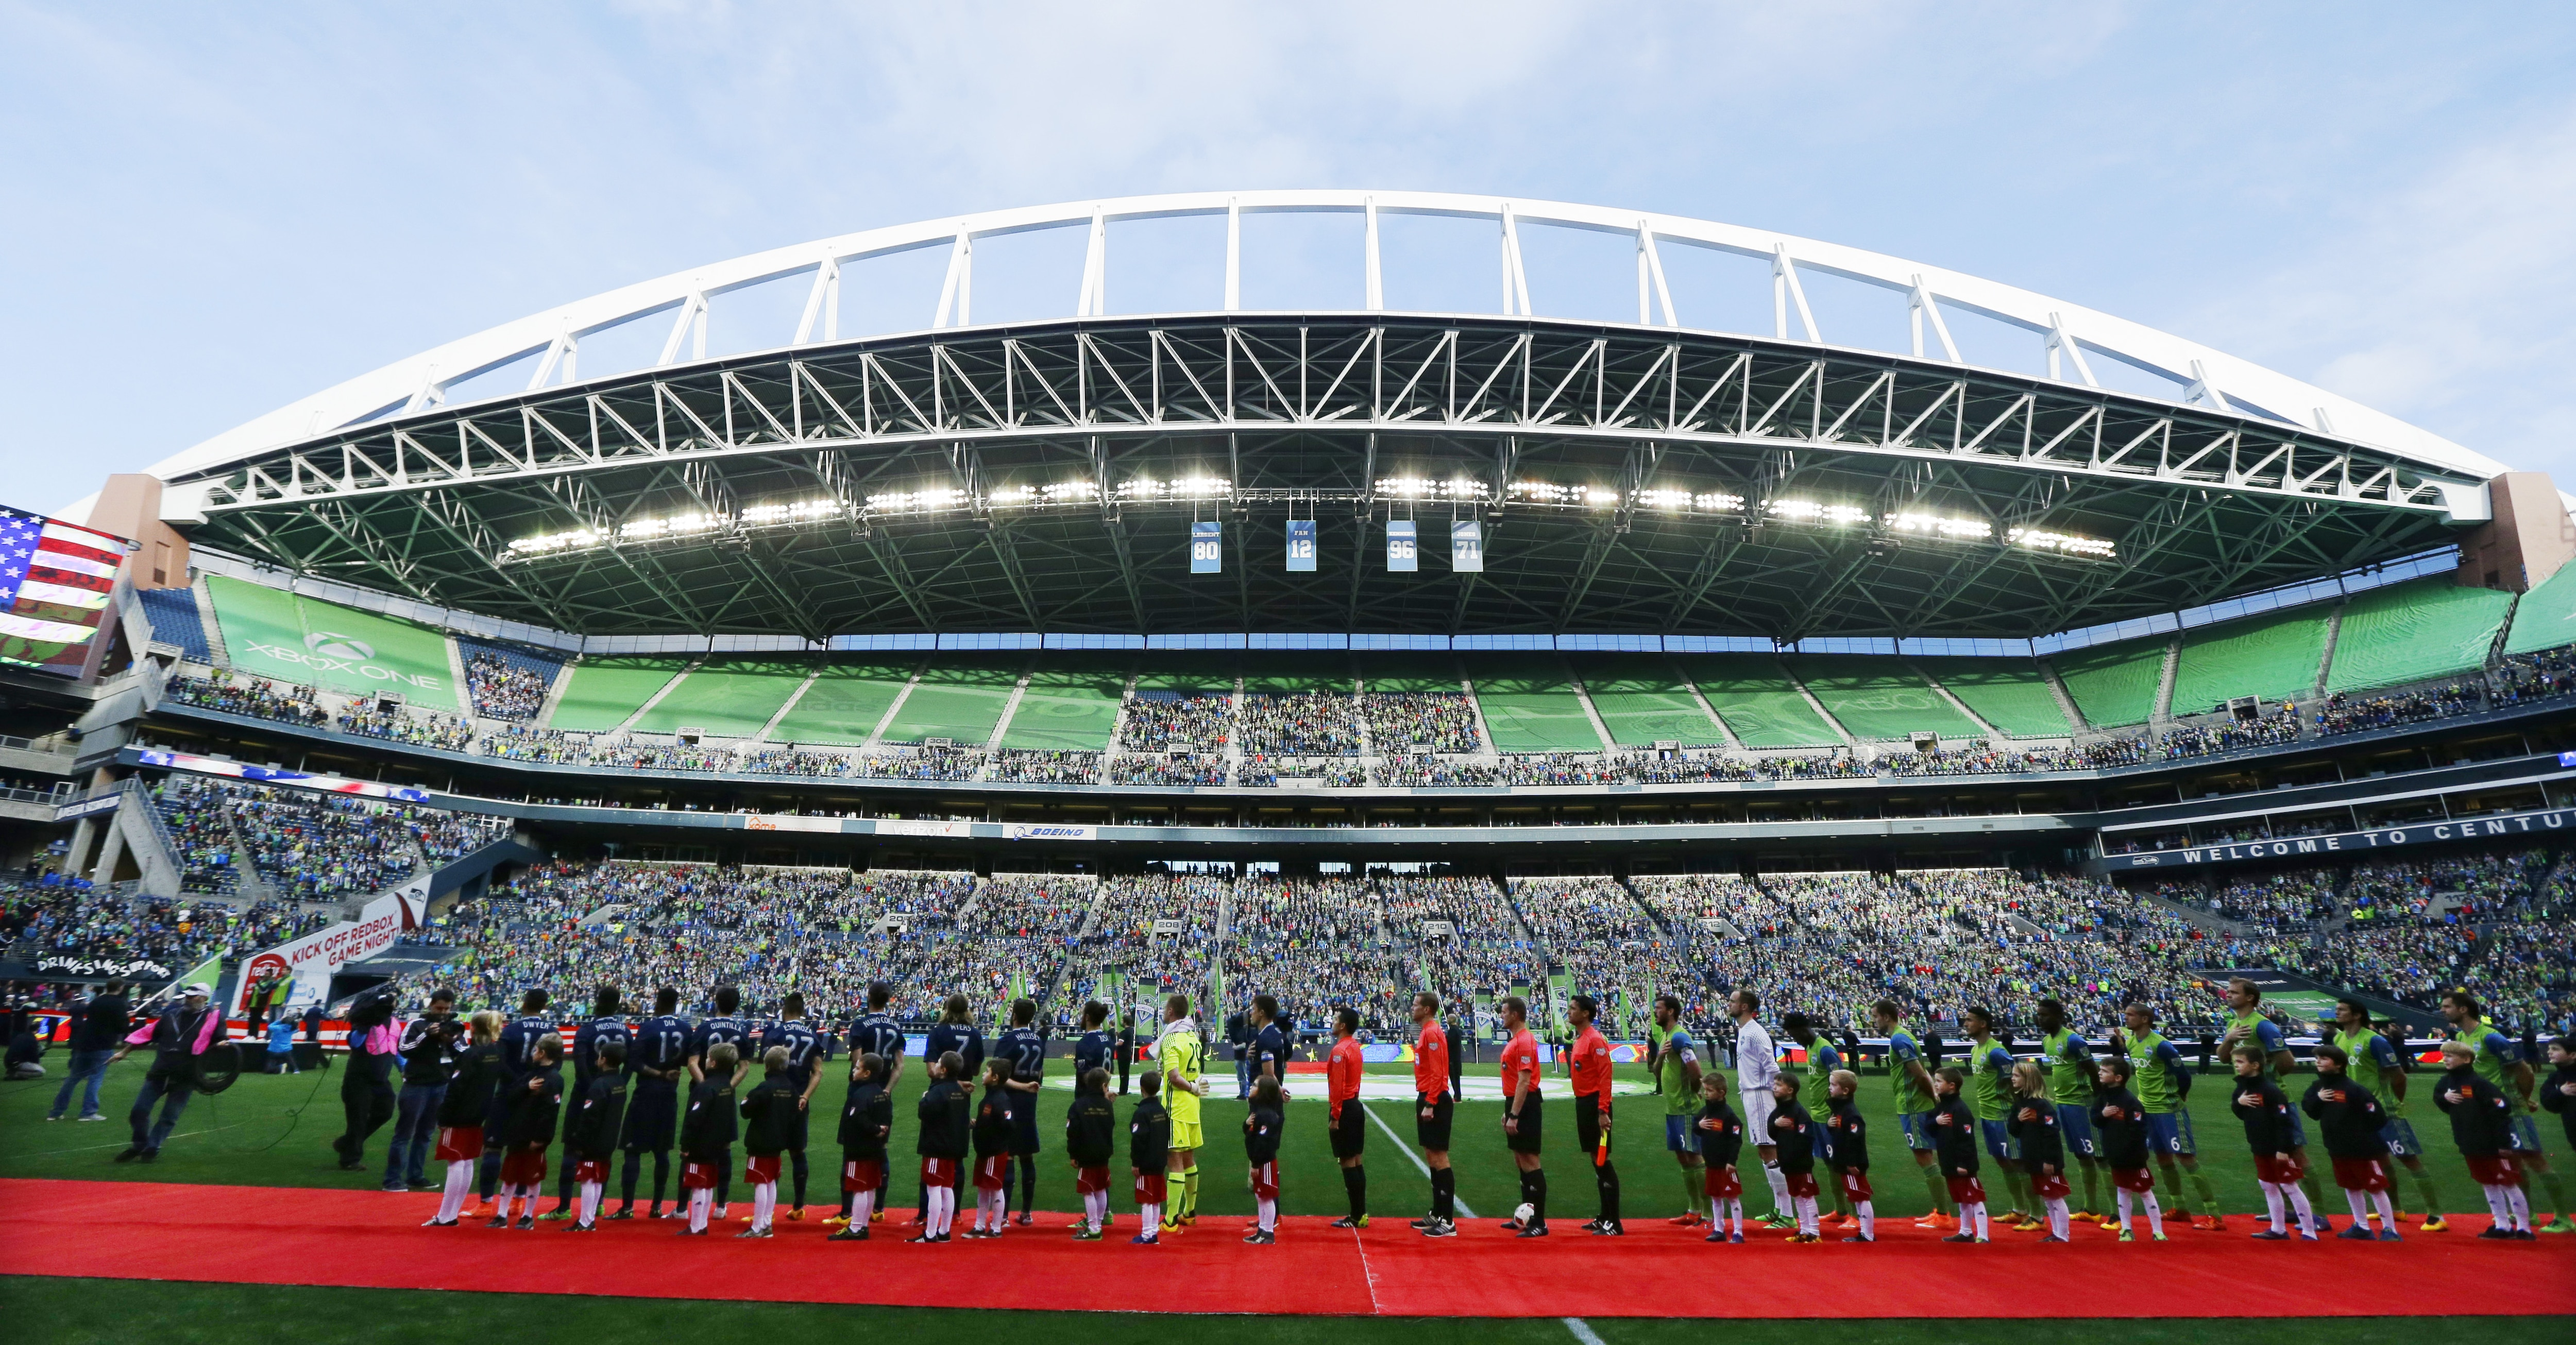 Teams lining up on red carpet over football field with seated crowd in stadium (© AP Images)